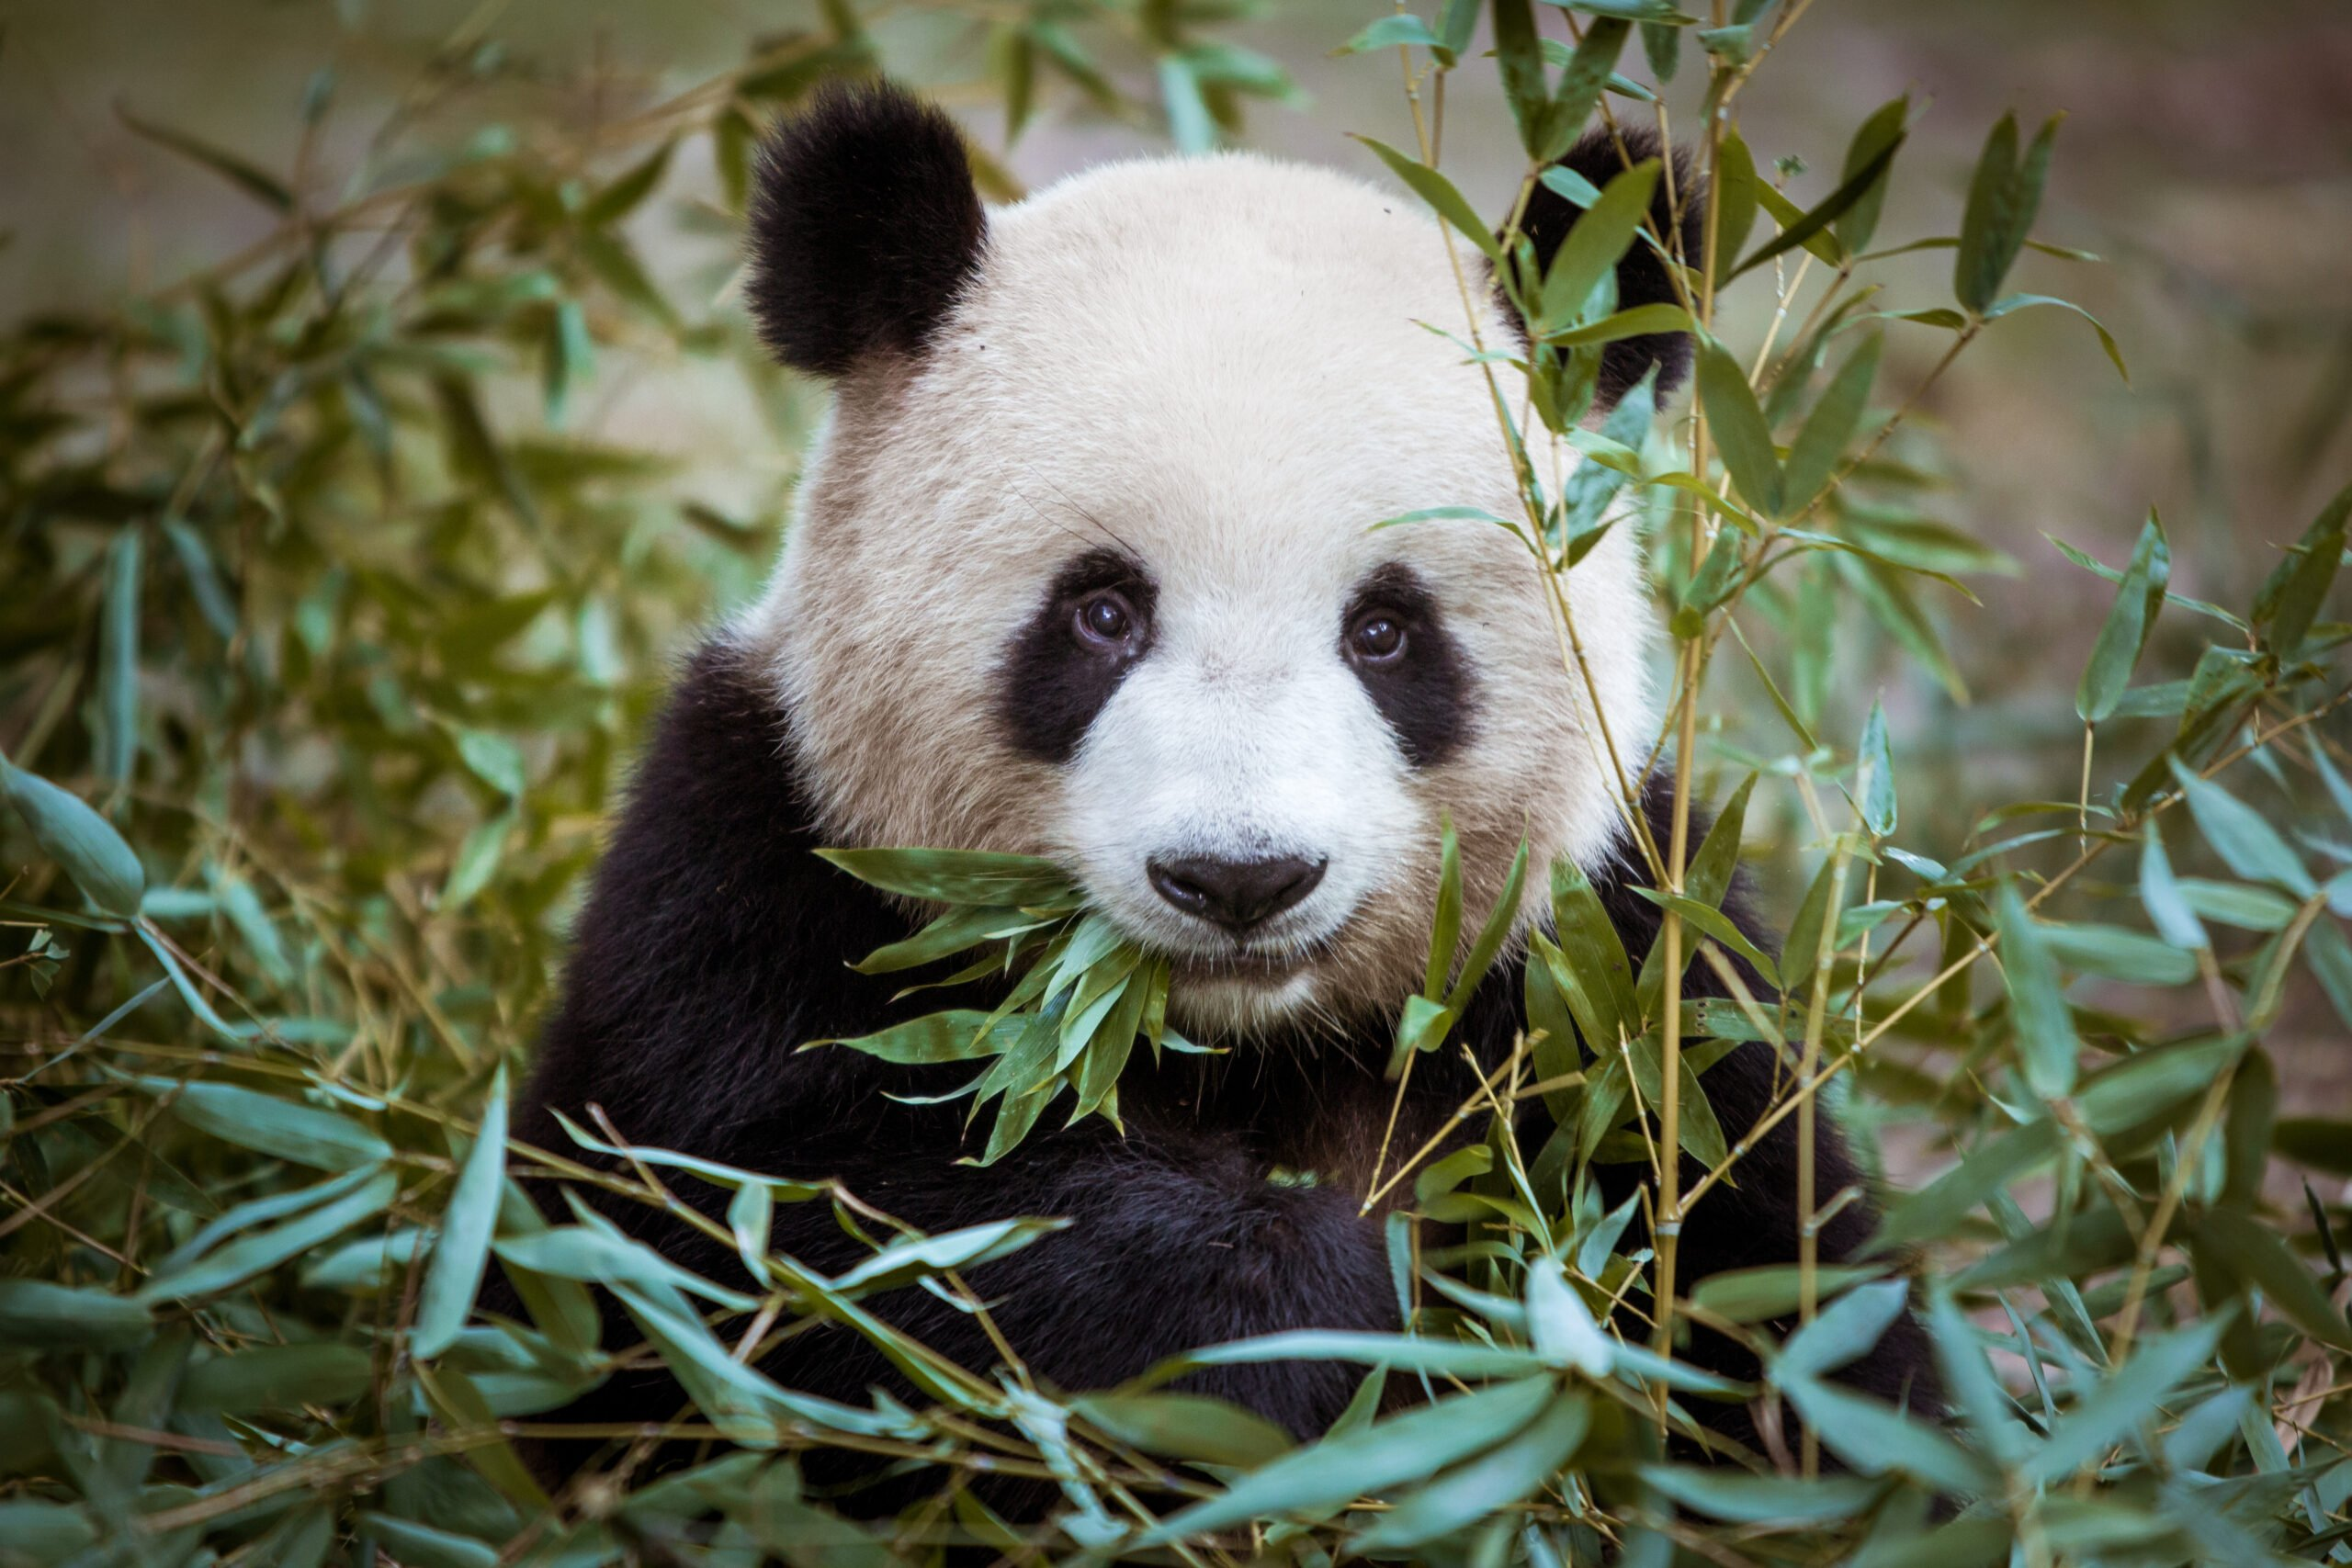 Learn About The Importance Of Panda Bears In The Chinese Culture In Our China Private Impression 14 Day Package